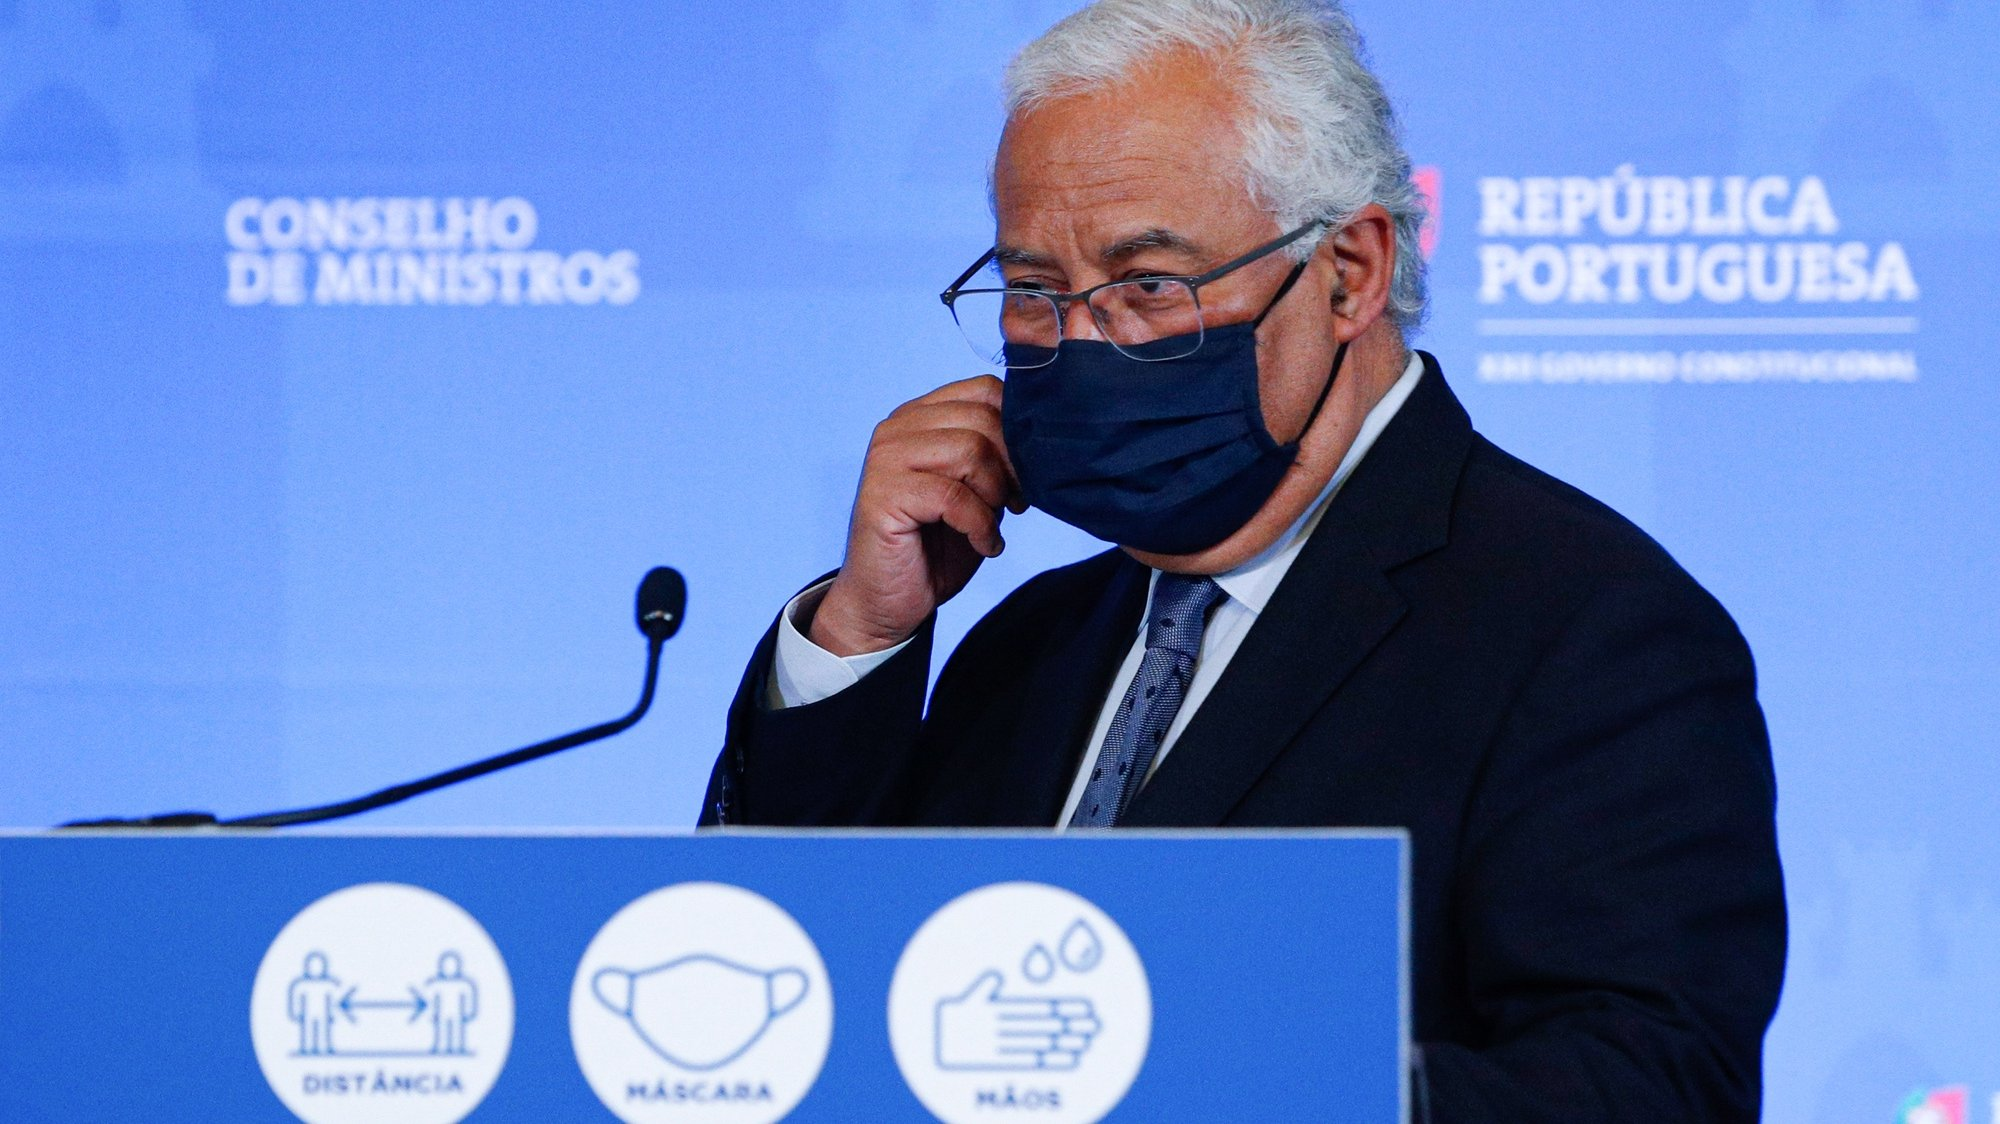 epa09068741 Portuguese Prime Minister Antonio Costa speaks during the briefing of the Council of Ministers Meeting, in Lisbon, Portugal, 11 March 2021. Costa announced the reopening plan measures in the context of the fight to control the Covid-19 pandemic.  EPA/ANTONIO COTRIM